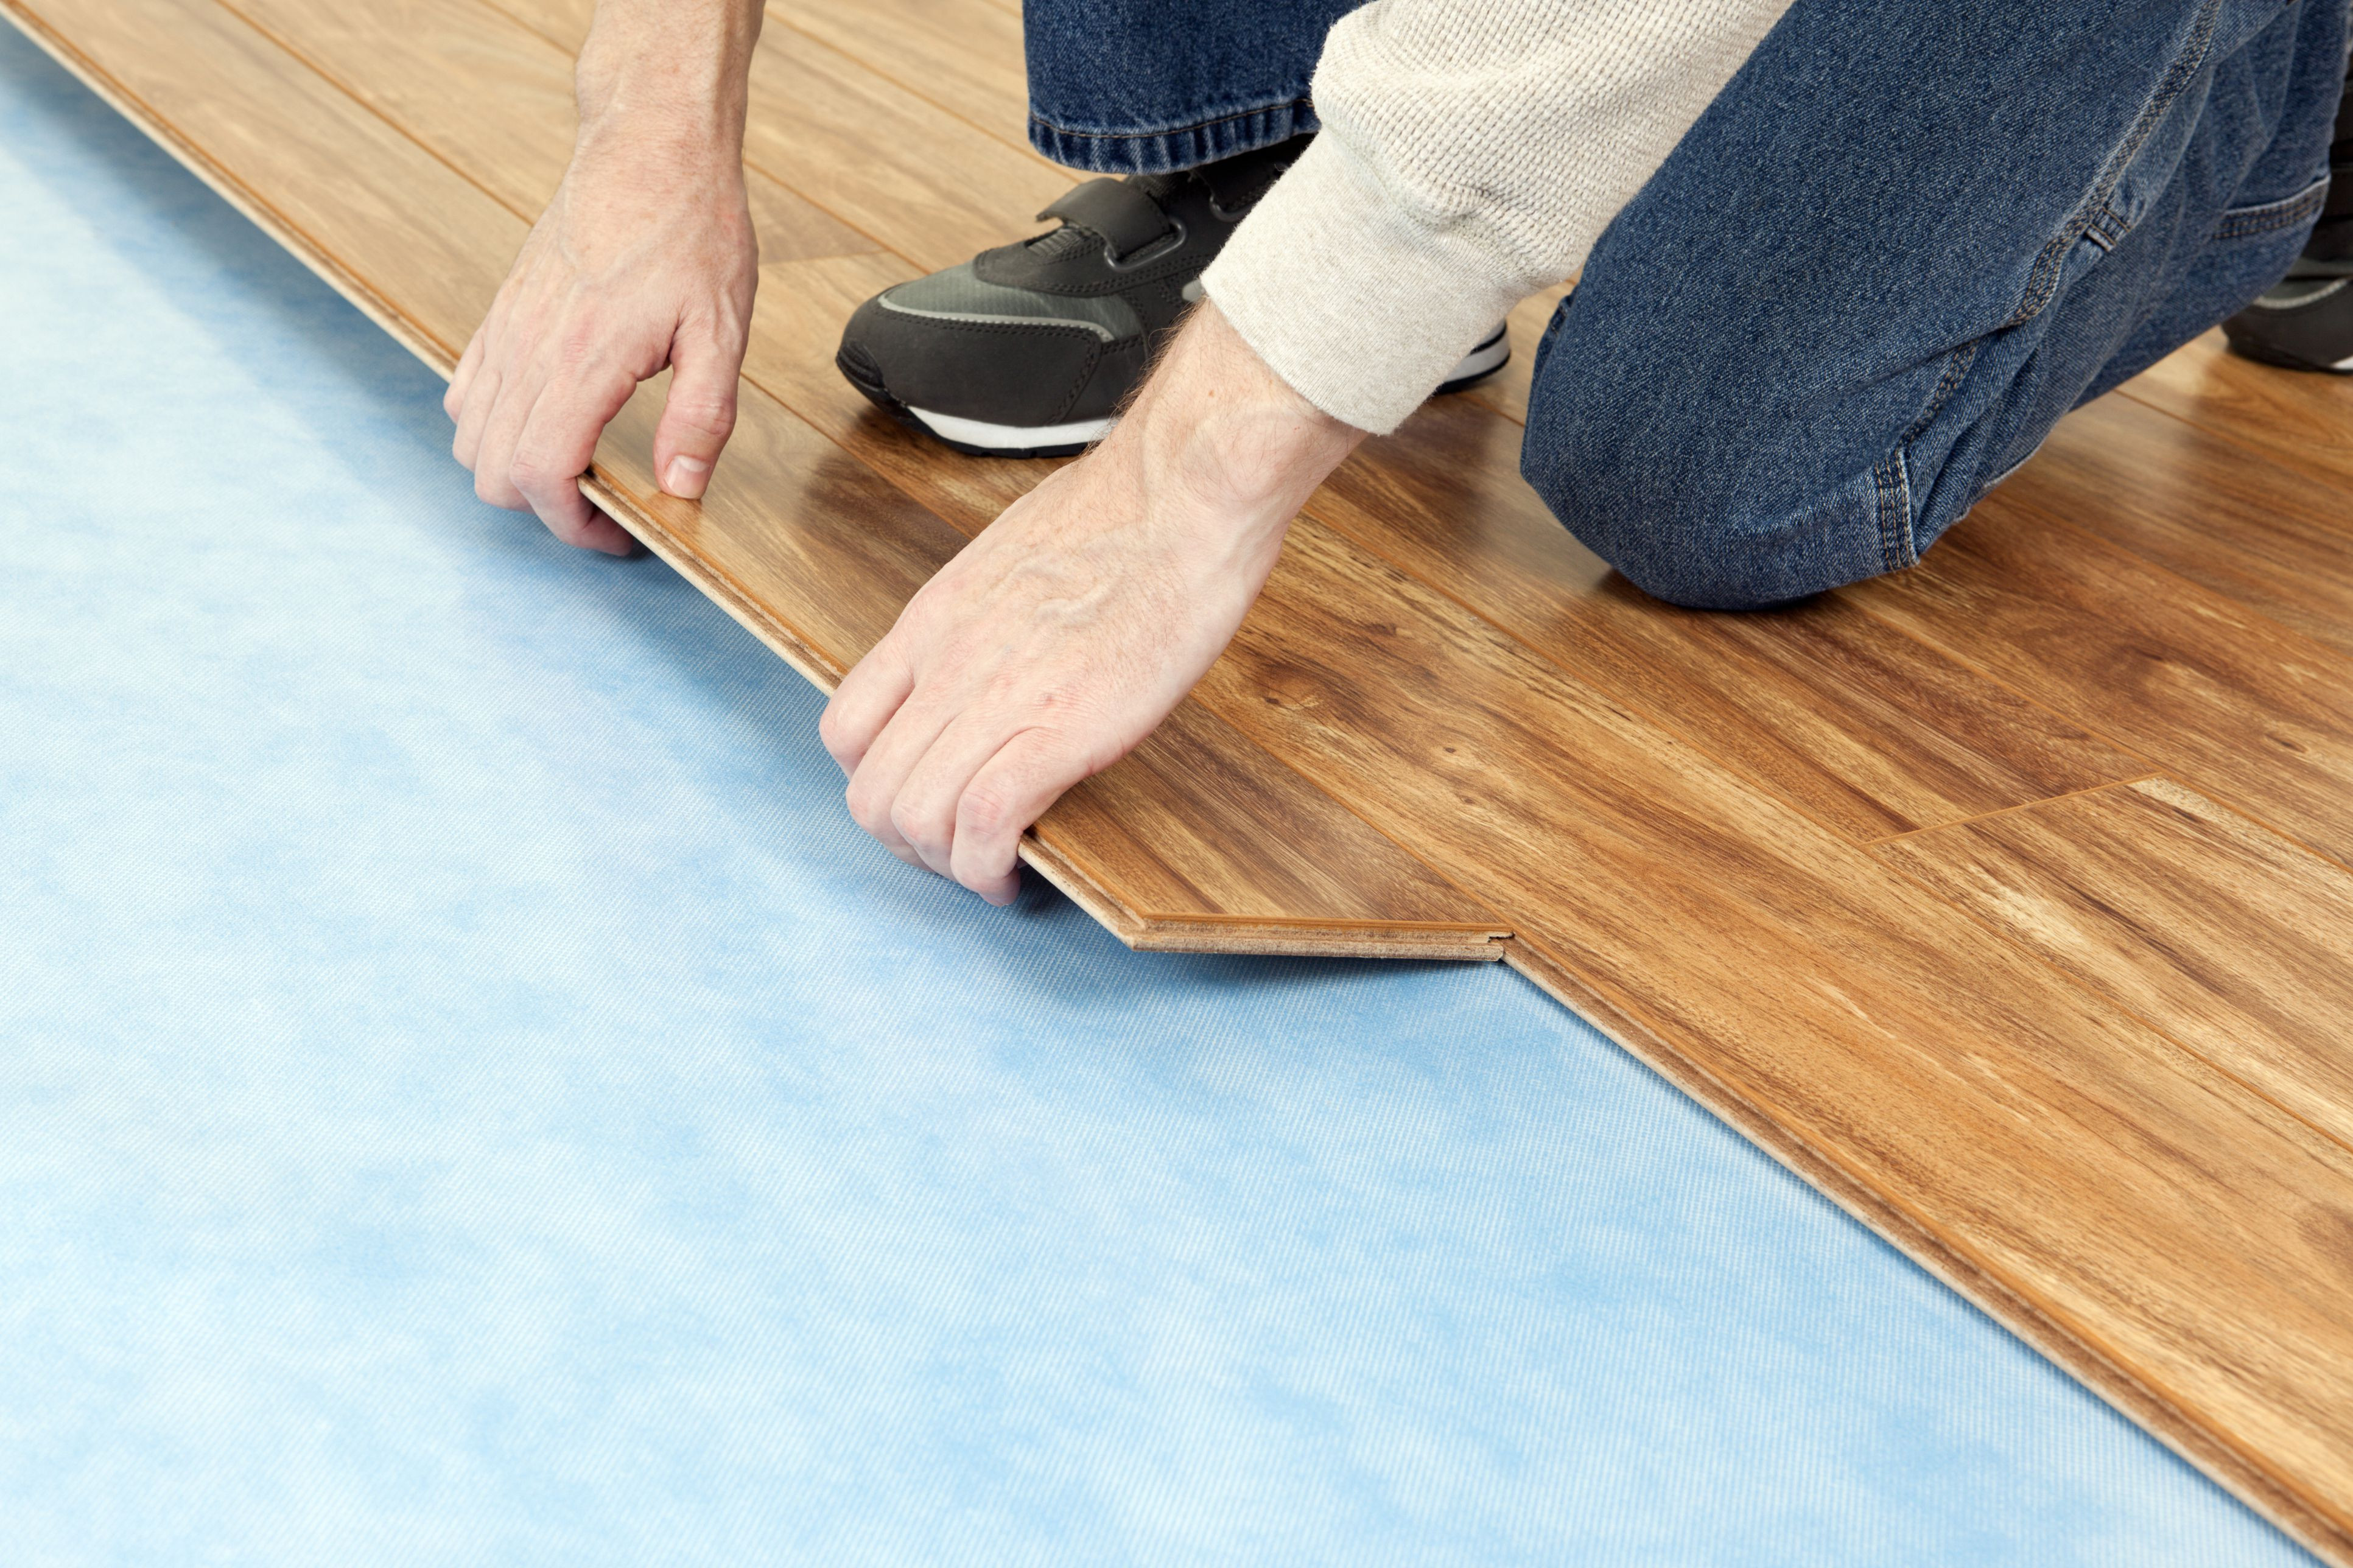 rug types for hardwood floors of flooring underlayment the basics pertaining to new floor installation 185270632 582b722c3df78c6f6af0a8ab